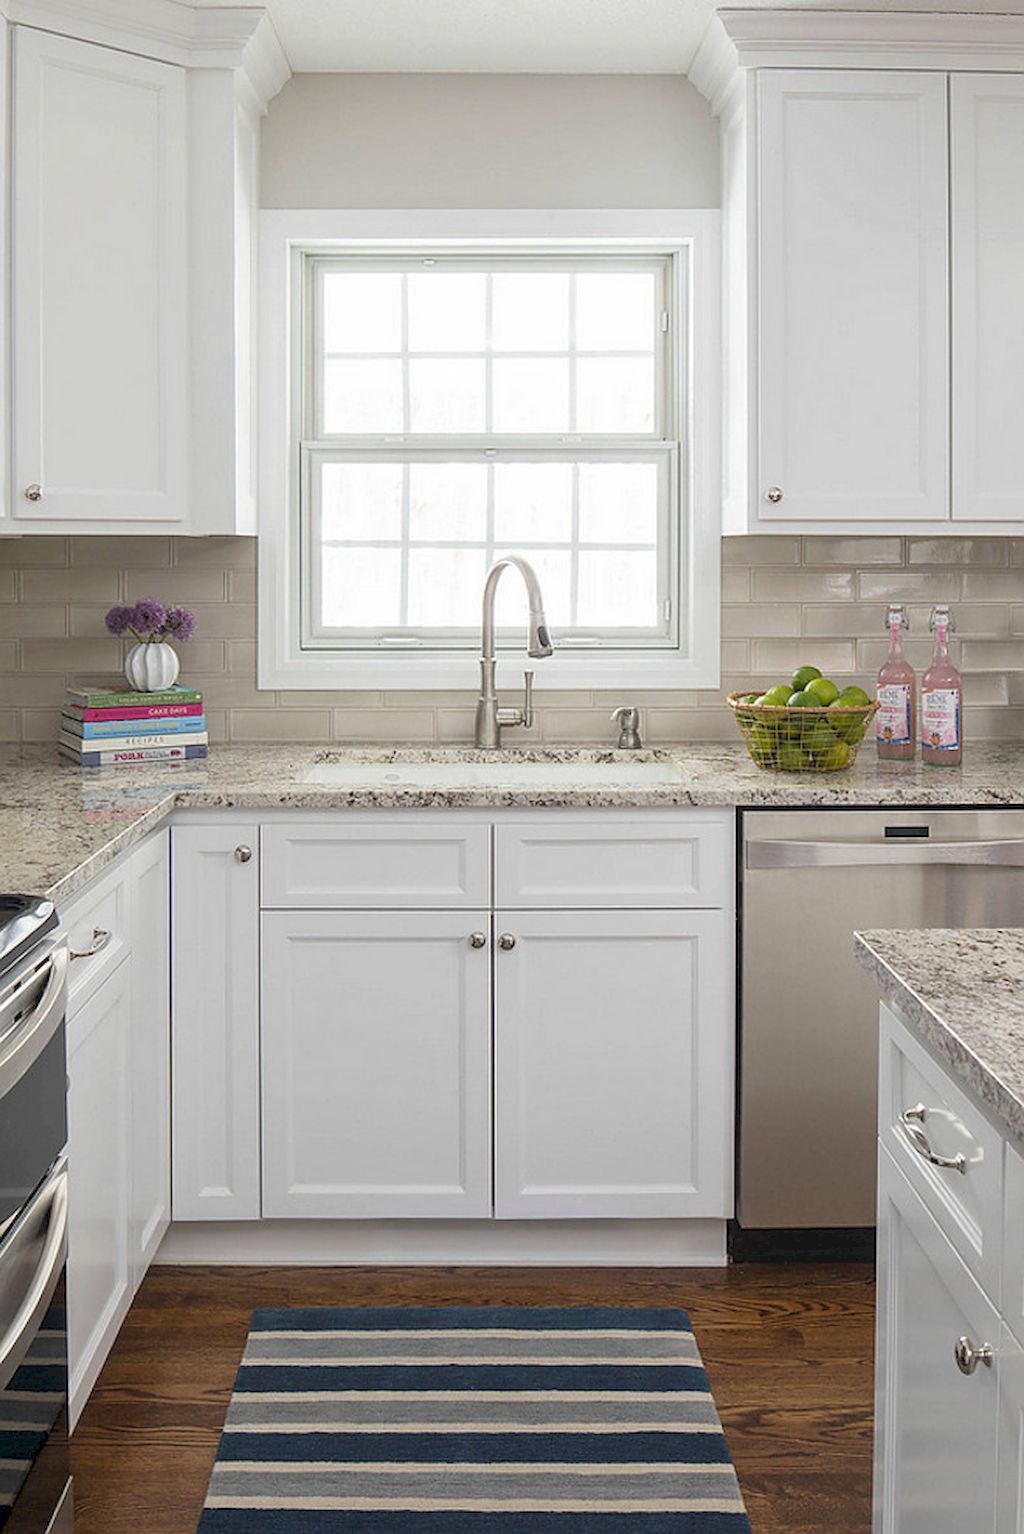 Gorgeous 90 Beautiful Kitchen Remodel Backsplash Tile Ideas  Https://decorapartment.com/